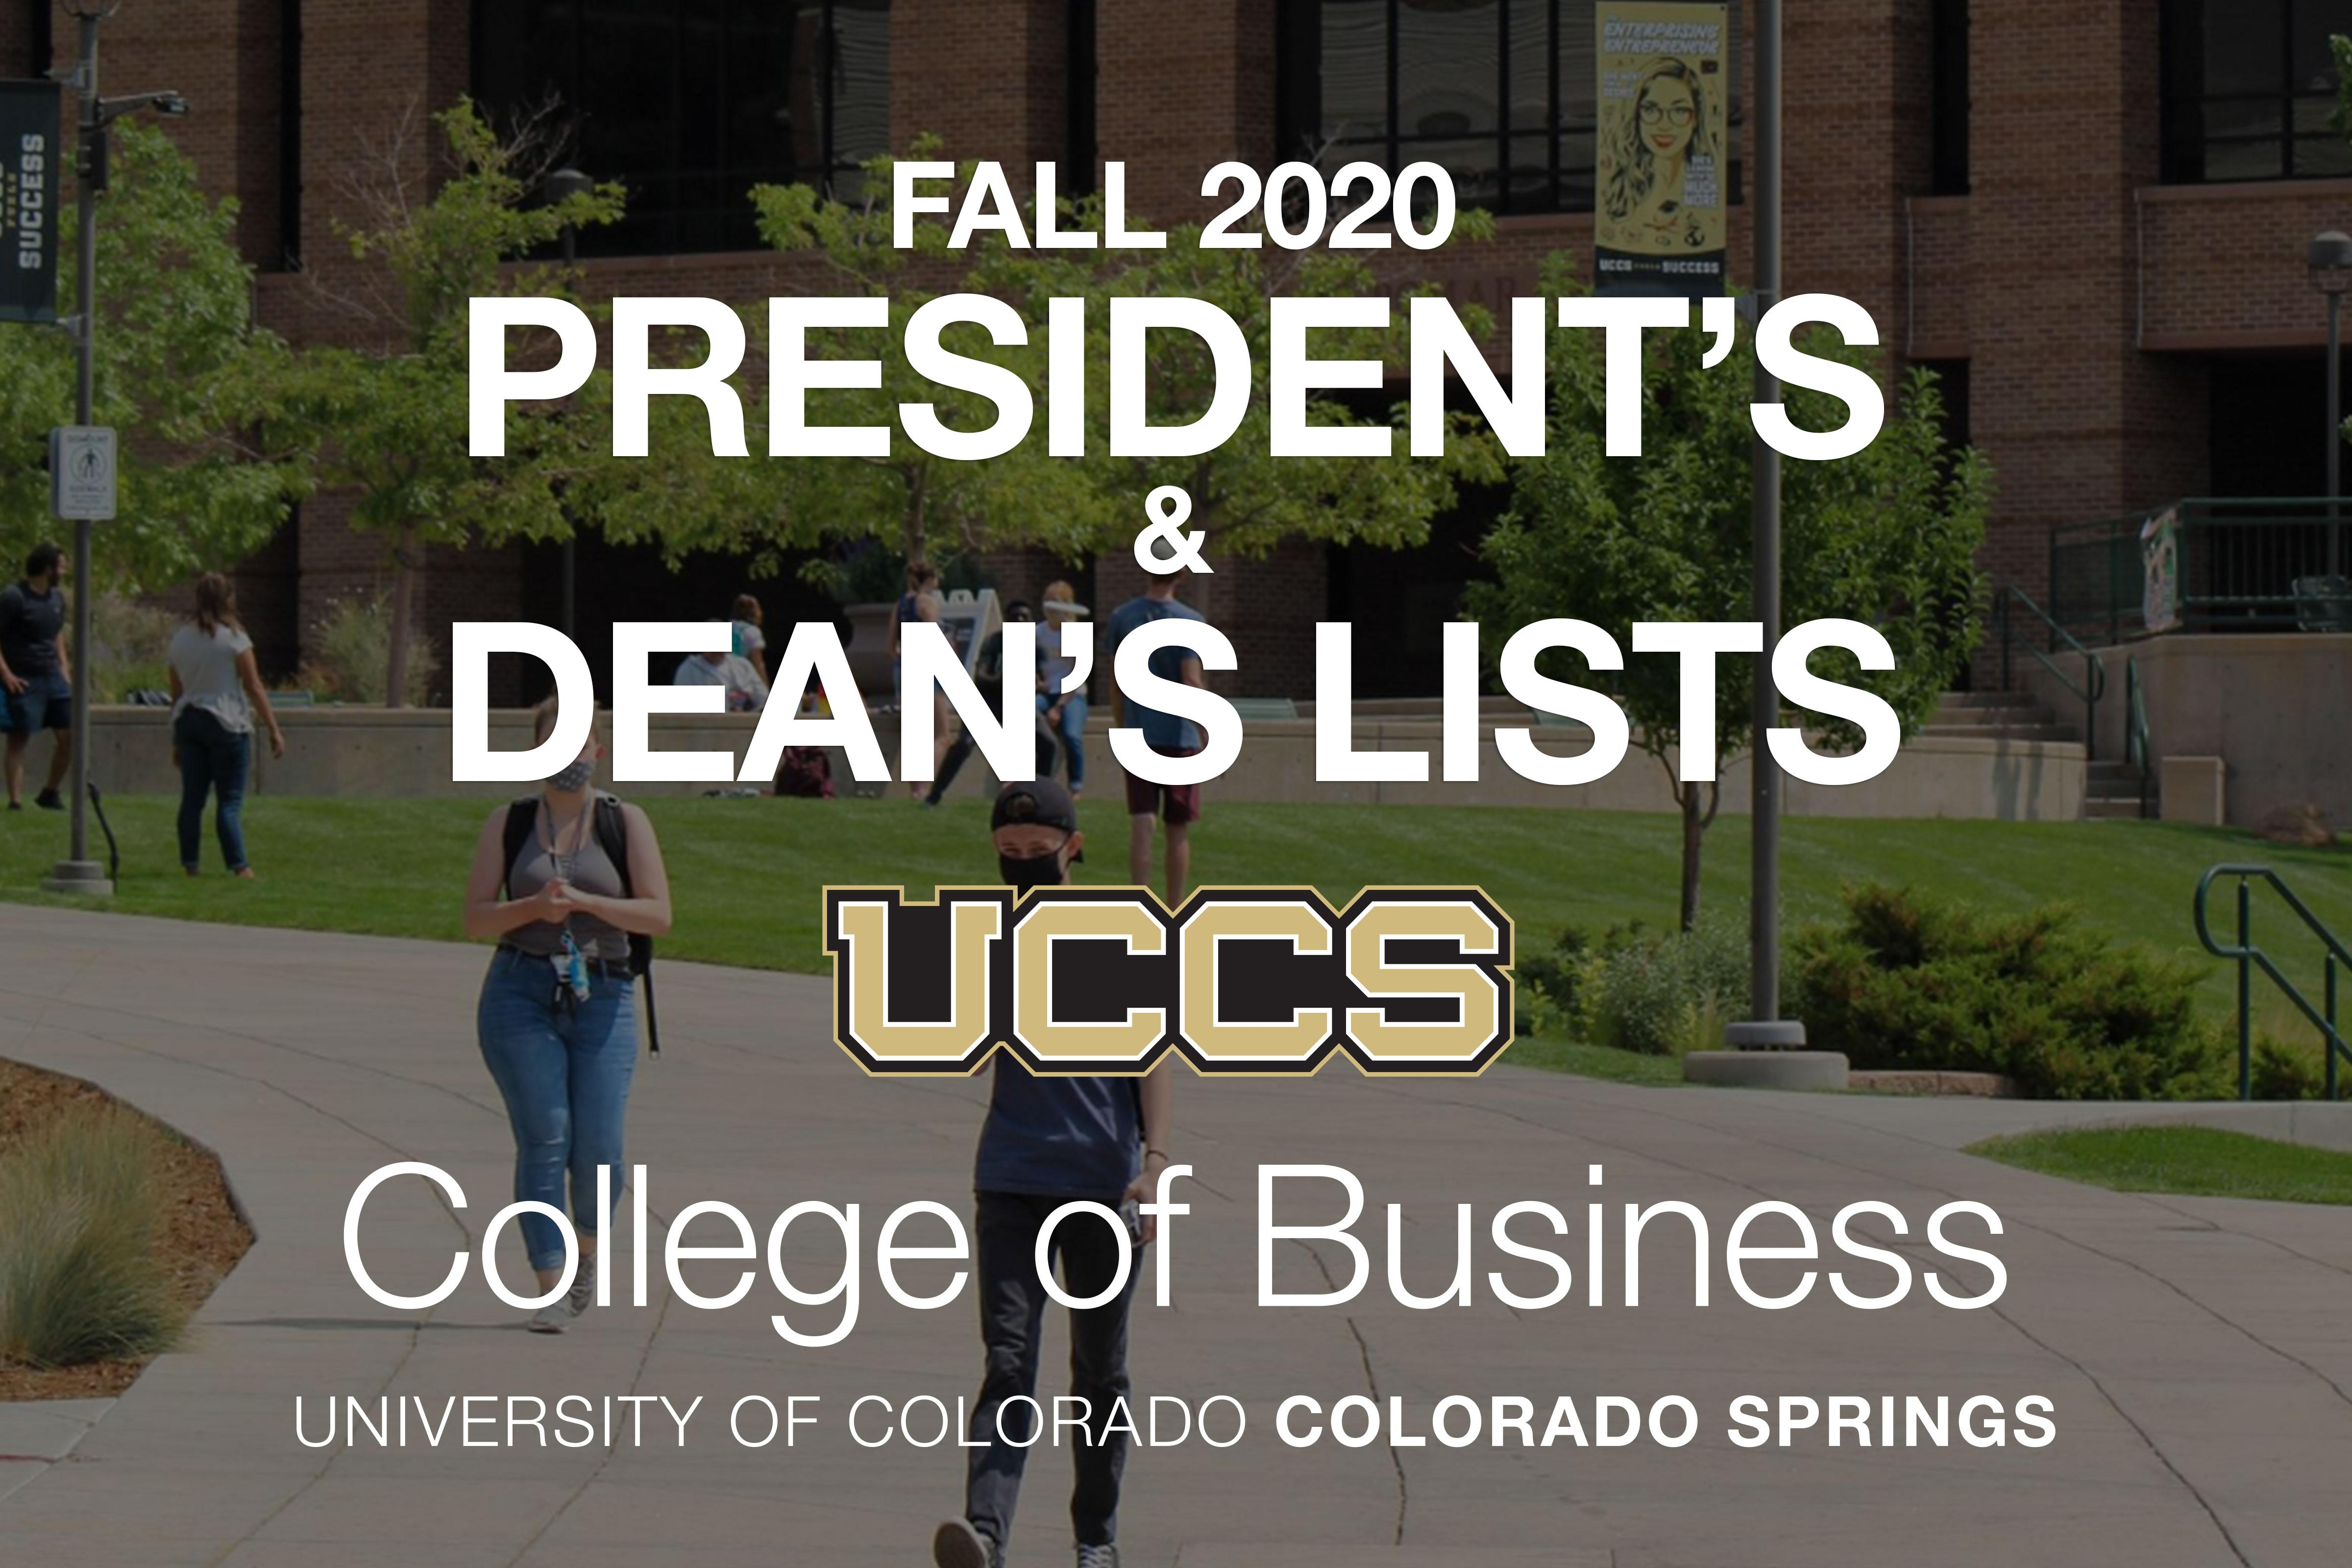 Graphic for the fall 2020 College of Business President's and Dean's List honorees